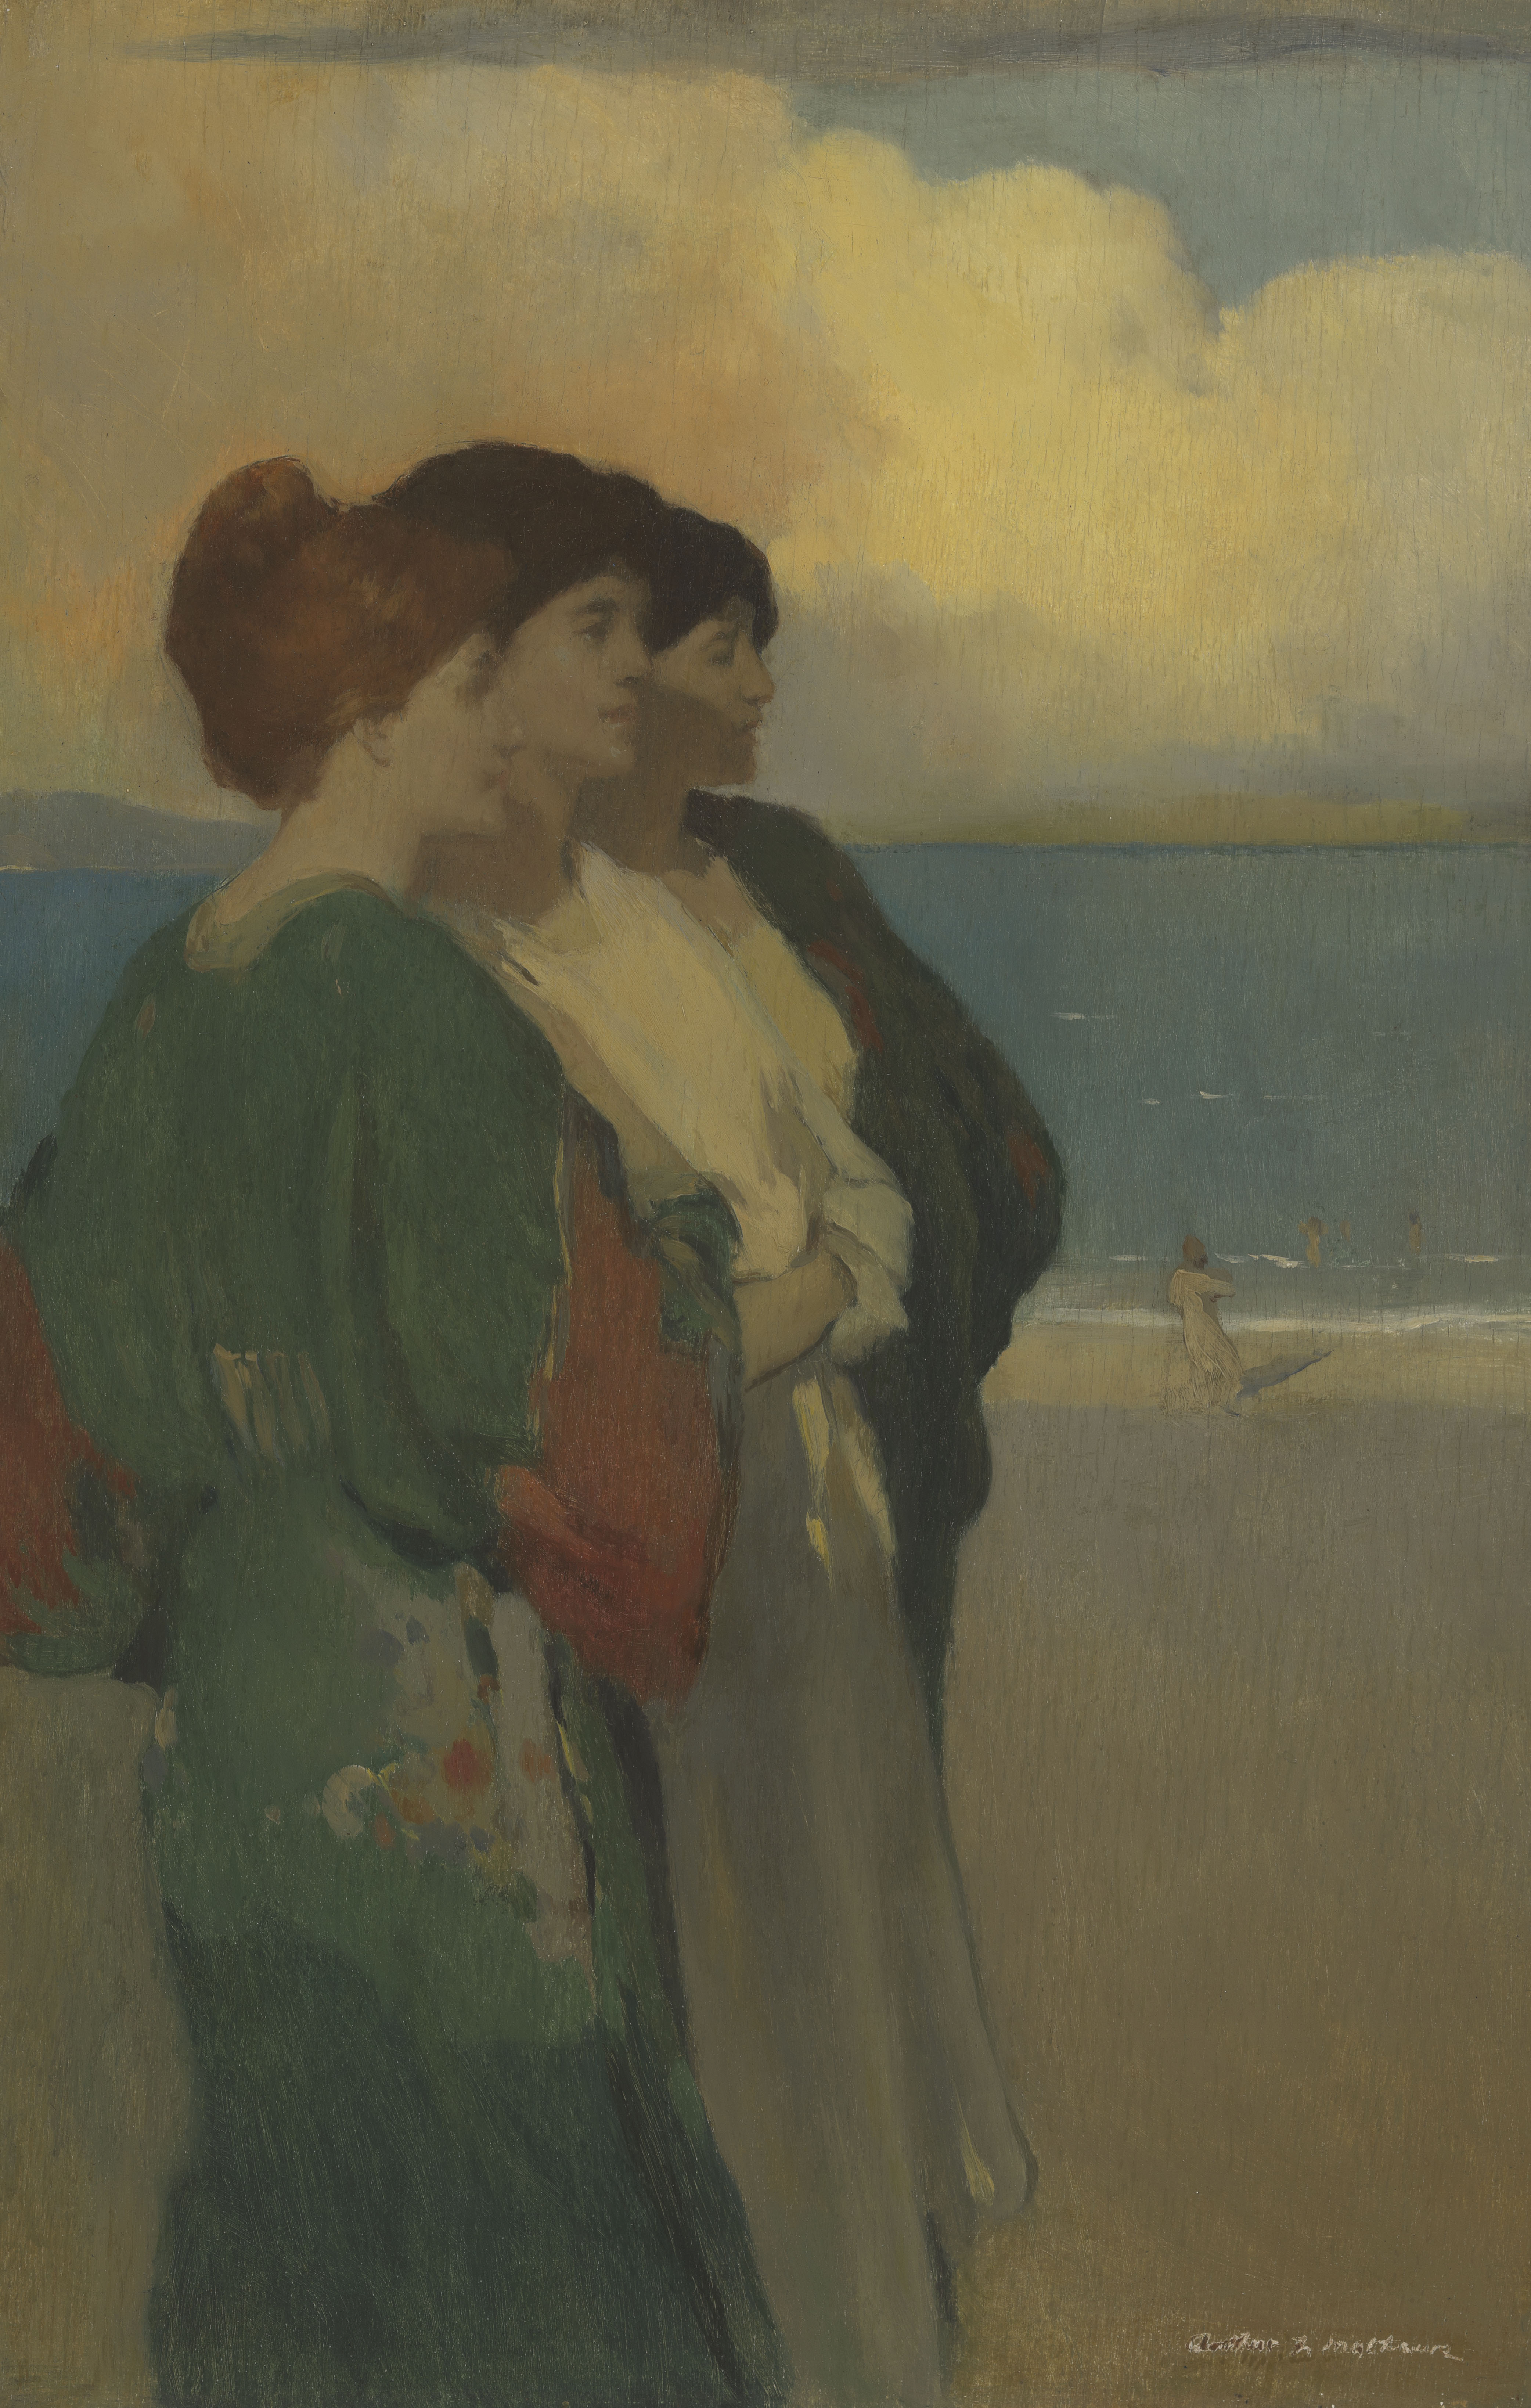 Song of the Sea (The Three Graces) by Arthur Frank Mathews